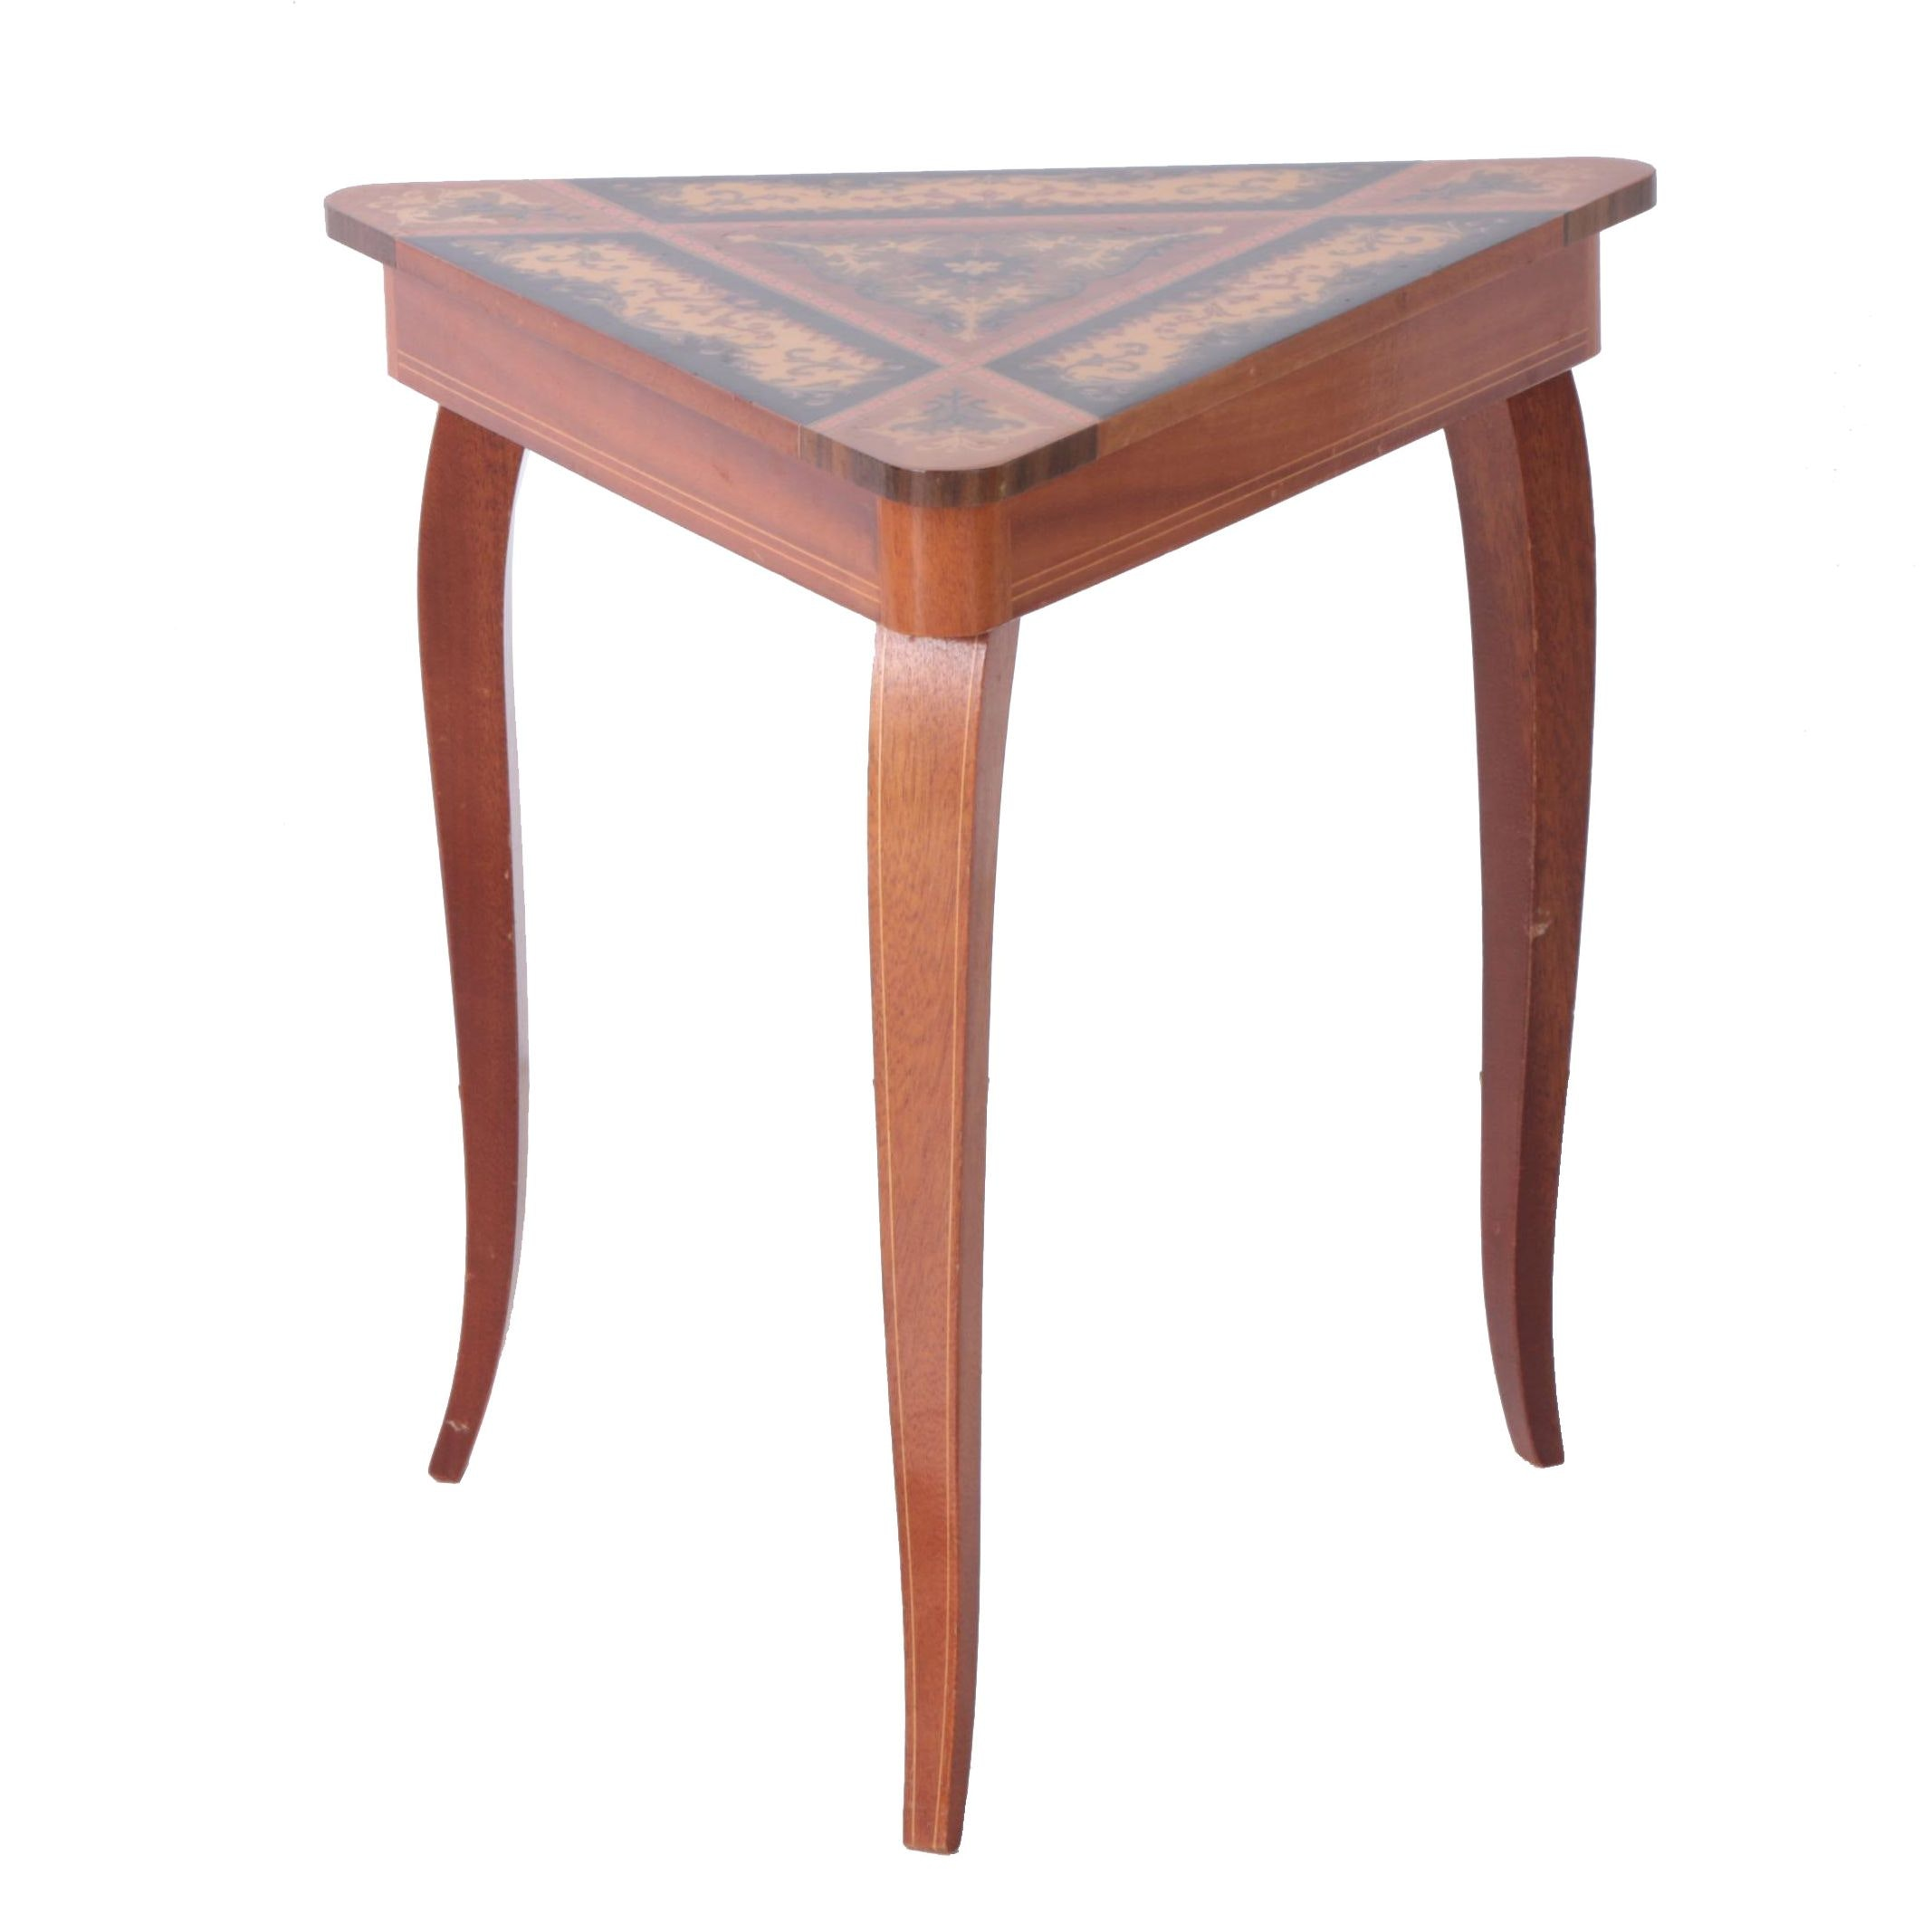 Italian Renaissance Style Marquetry Inlay Music Box Side Table, Mid 20th Century